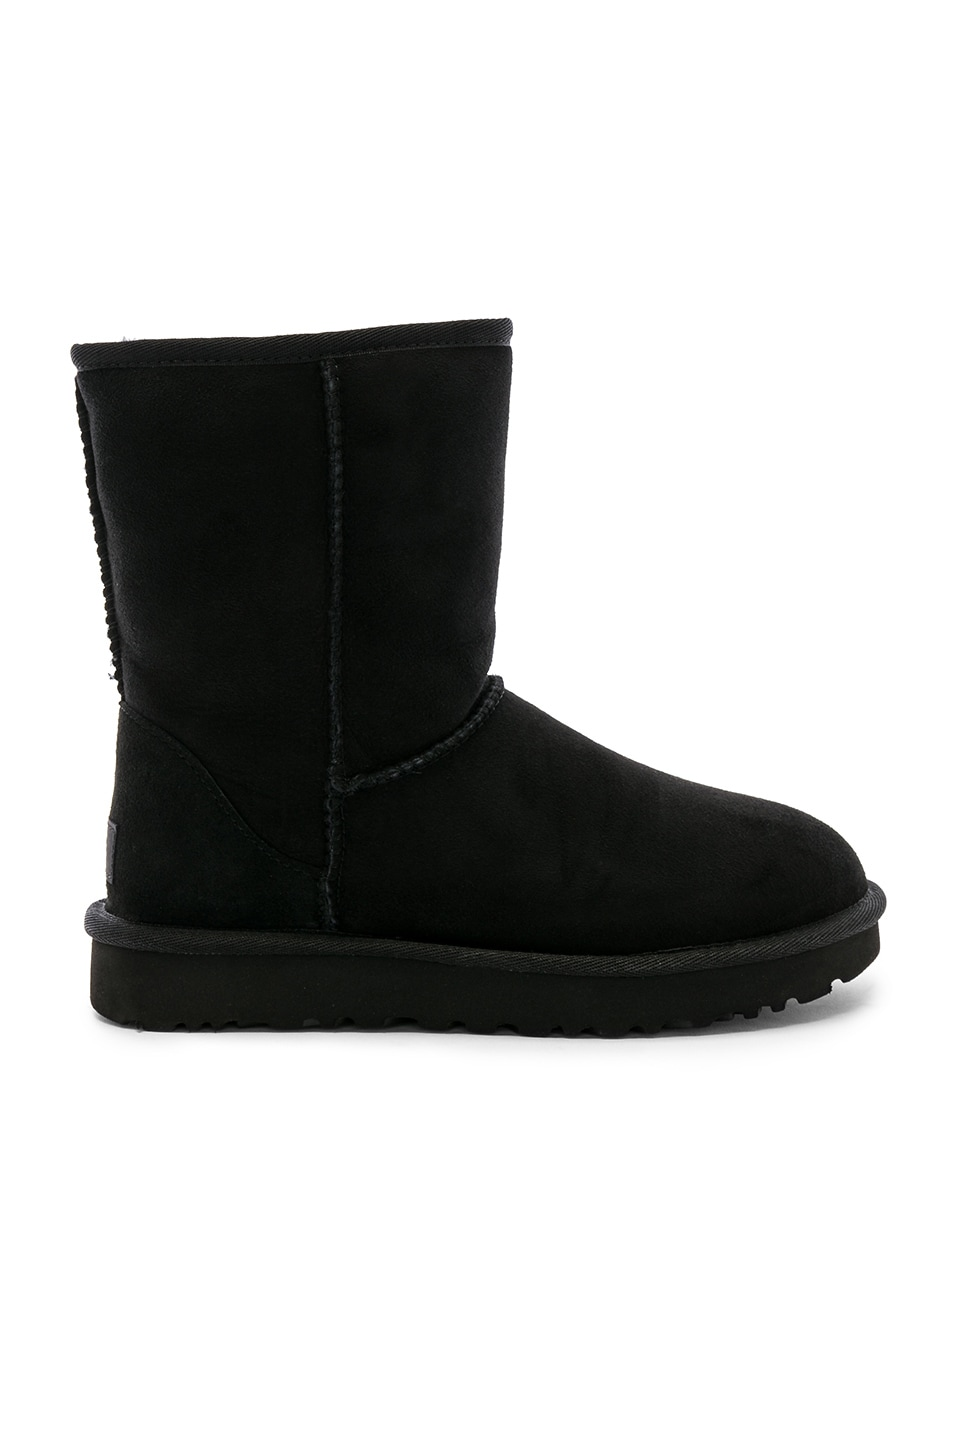 UGG Classic Short II Boot in Black